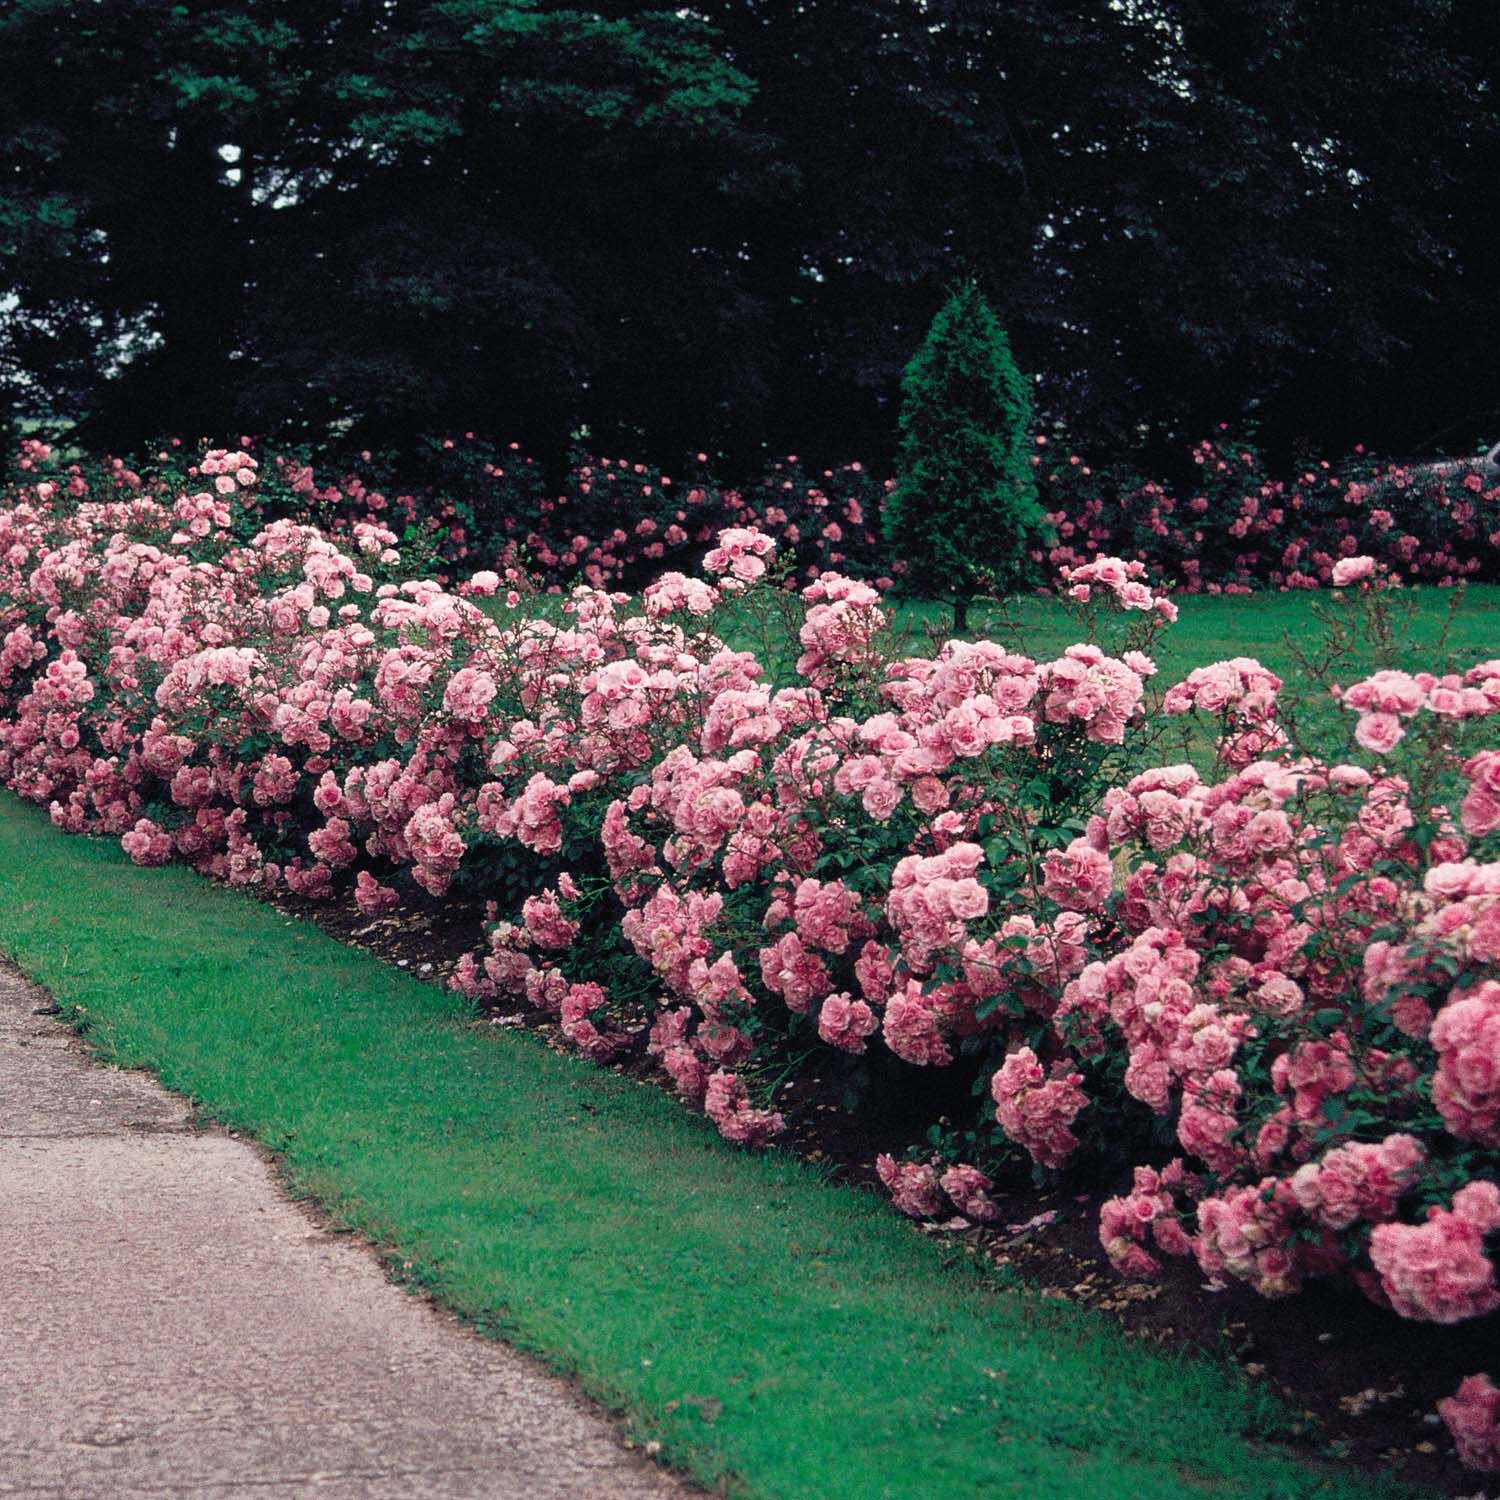 Simple Rose Garden: Before There Were The Easy Care Roses